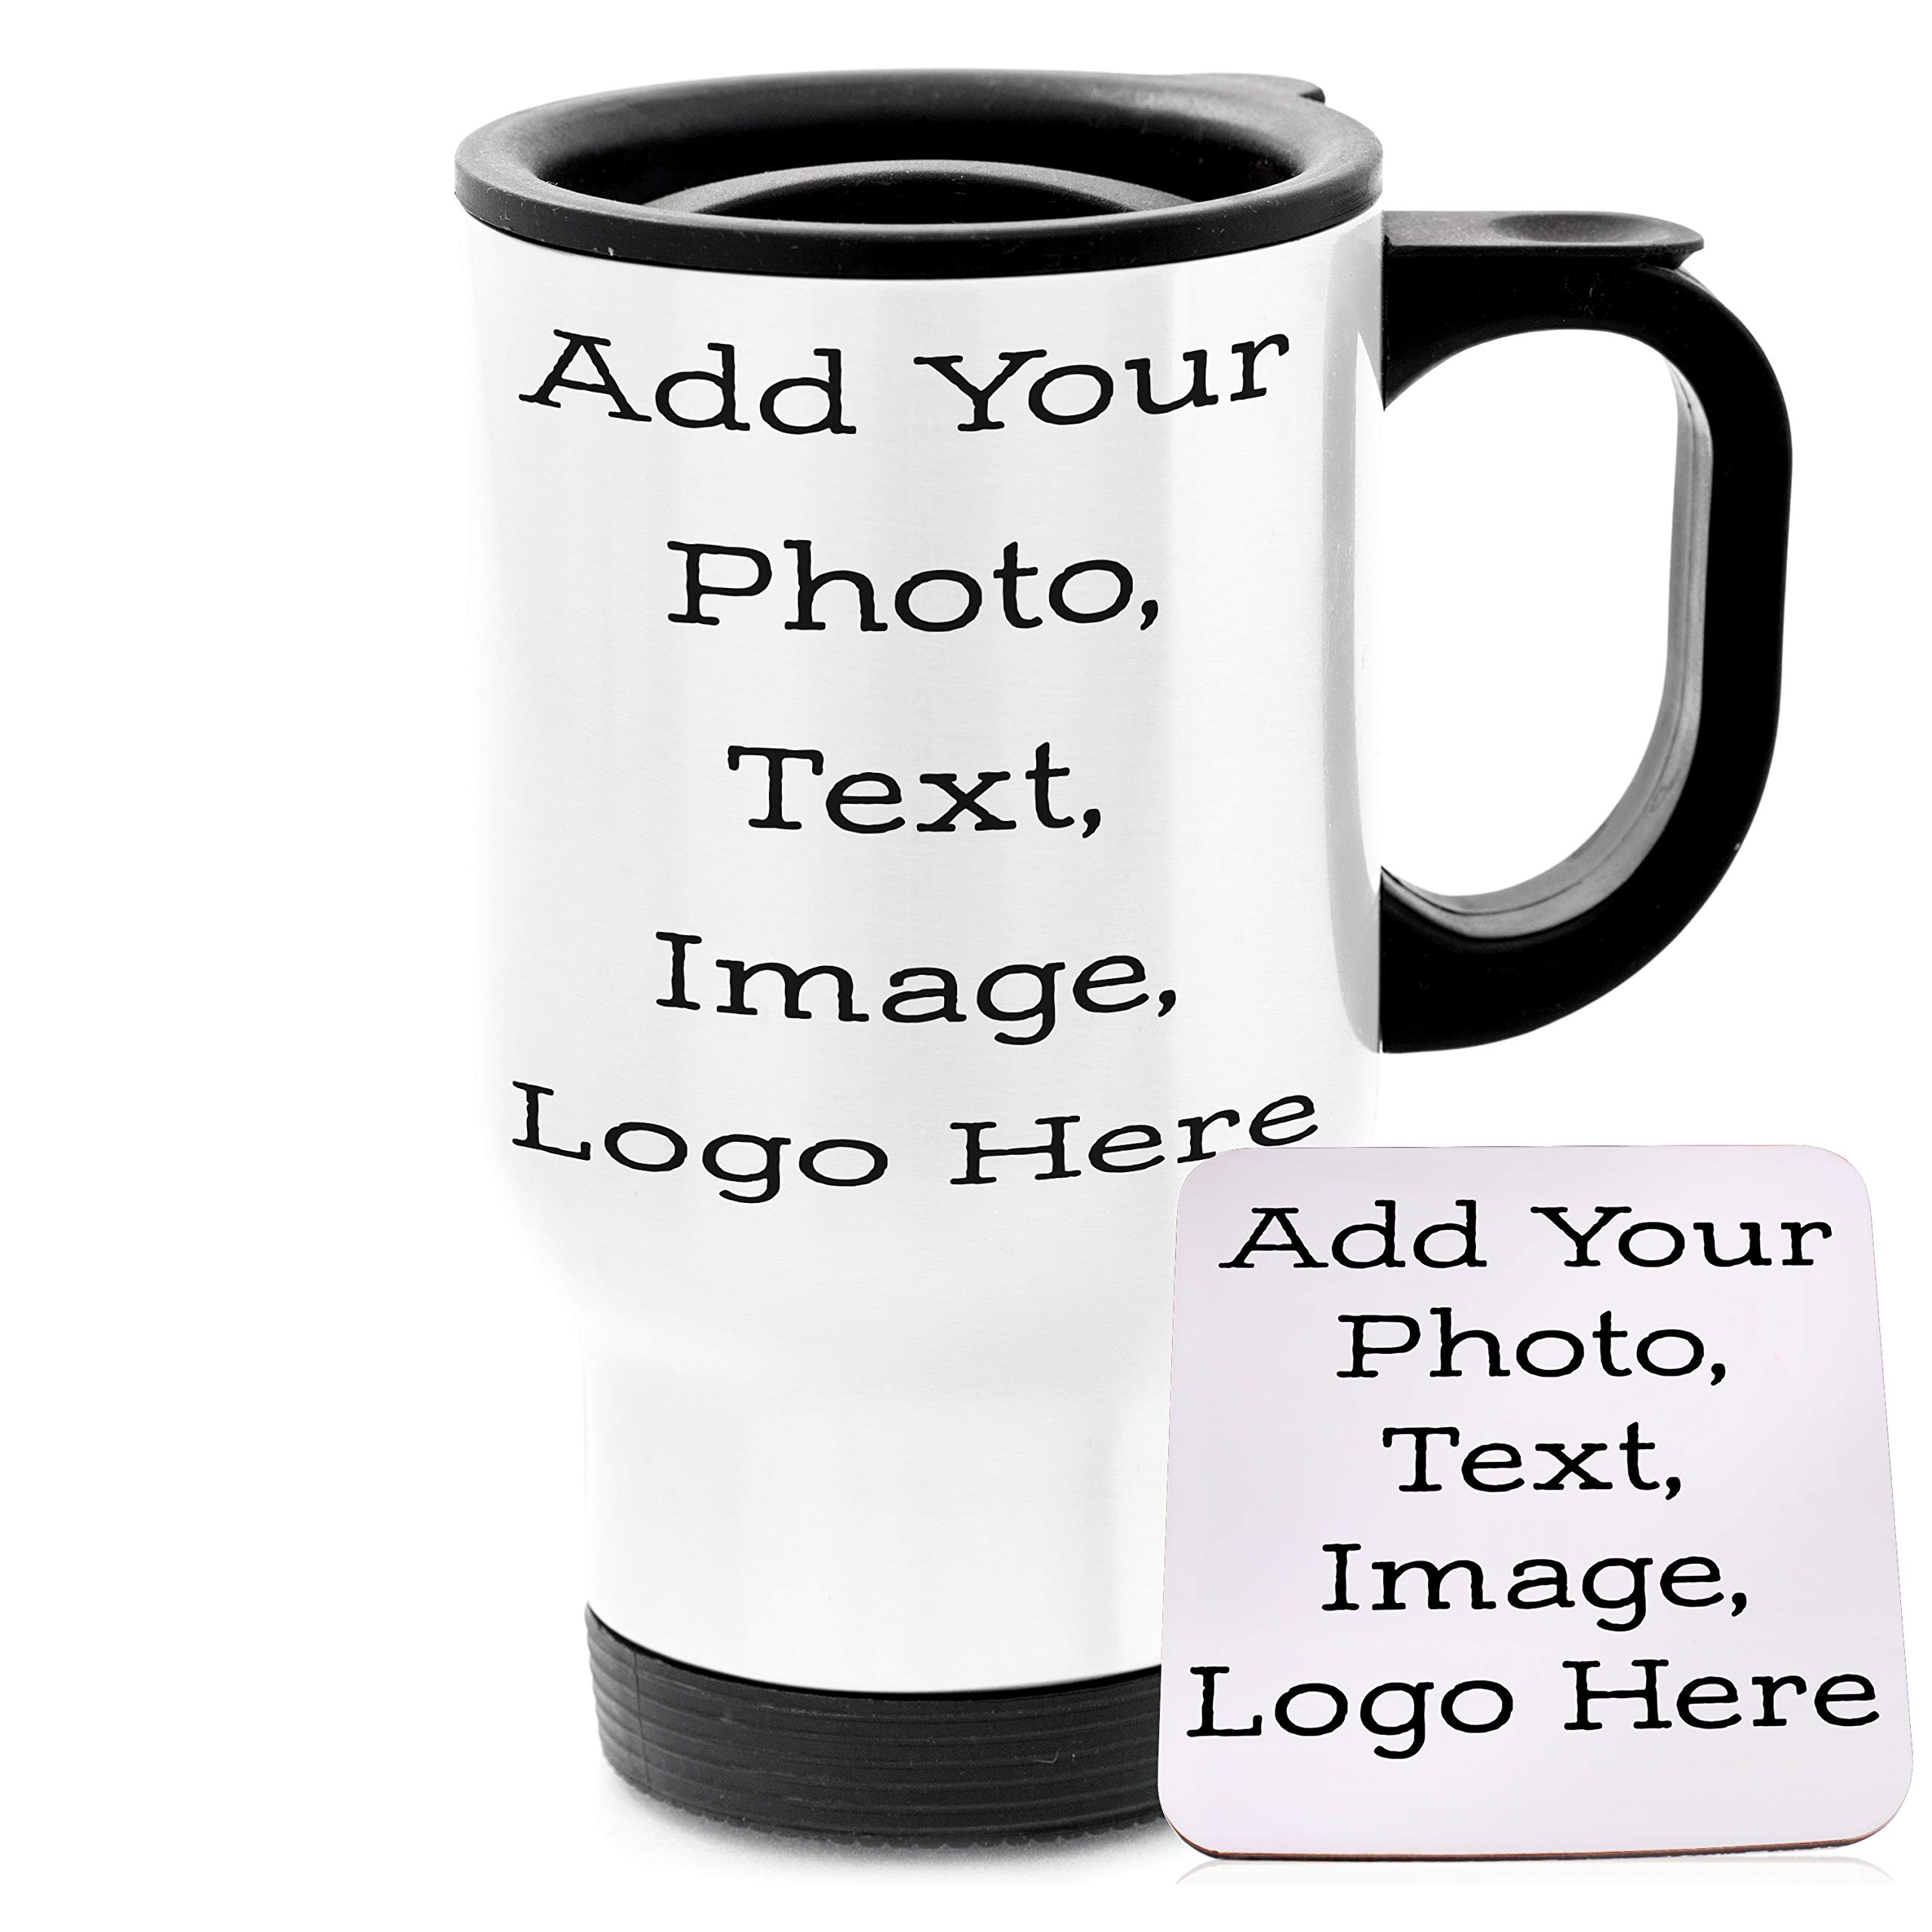 Personalized Custom Travel Mug - Add Your Photo, Text, Logo, Monogram - 8 Different Fonts & Colors - 14oz Travel Tumbler with Lid Coffee Mug & Tea Cup with Matching Coaster